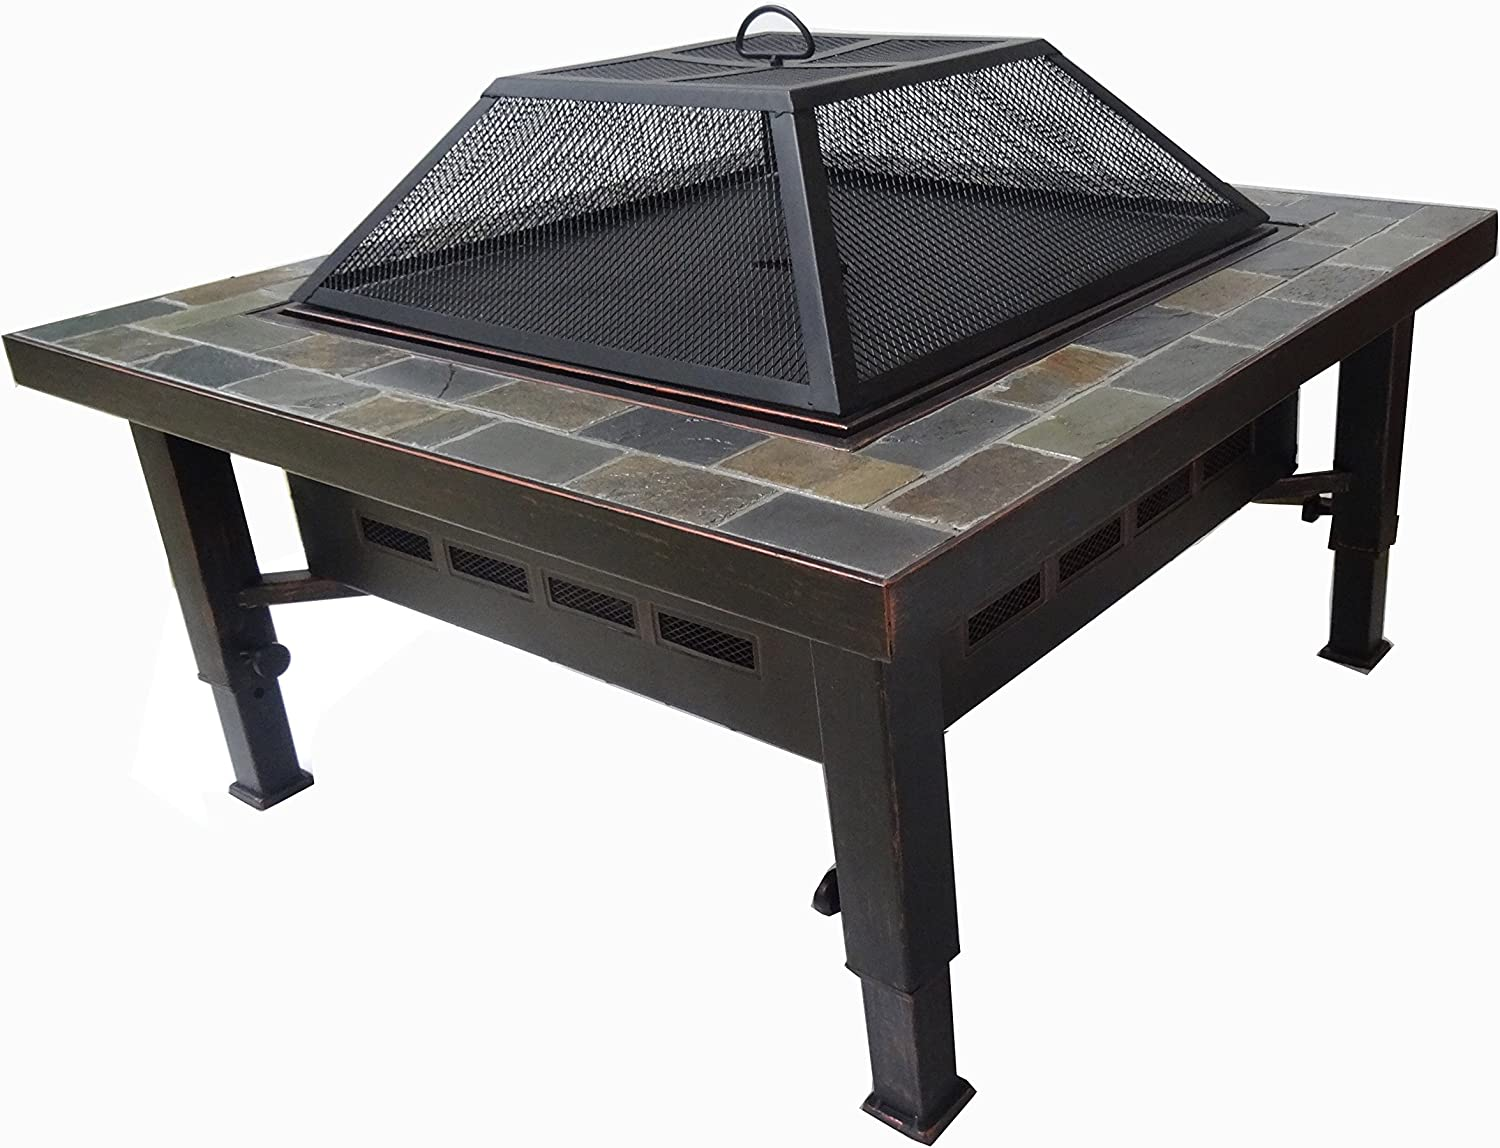 Amazon Com Global Outdoors 34 In Adjustable Leg Square Slate Top Fire Pit With Spark Screen Weather Resistant Cover And Safety Poker Garden Outdoor